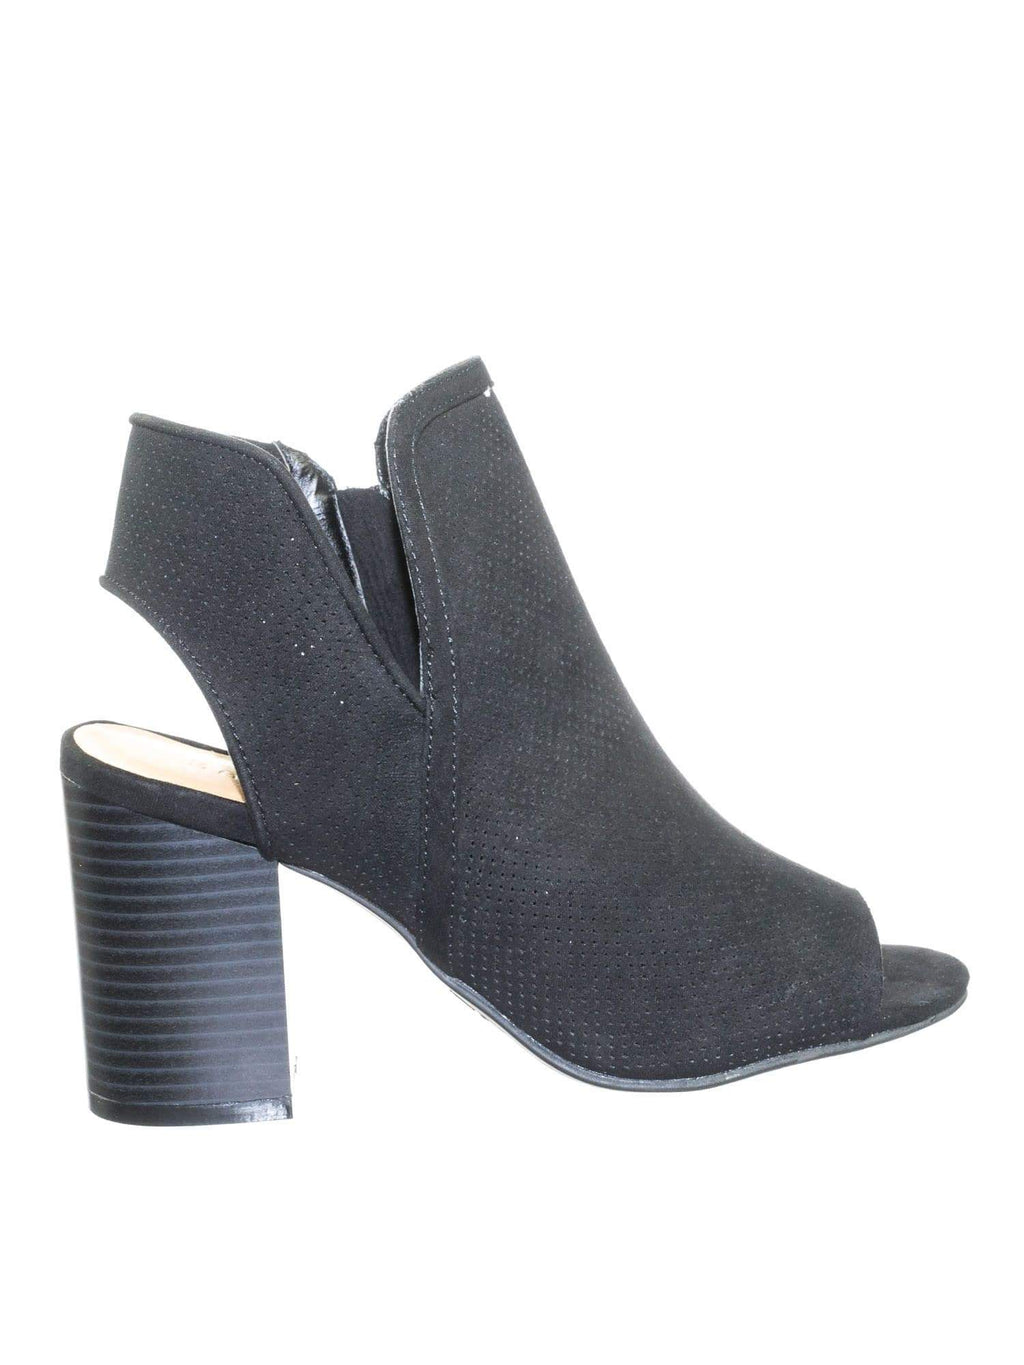 Taste18 TanFs Asymmetrical Slit Perforated Chunky Block Heel Peep Toe Ankle Bootie